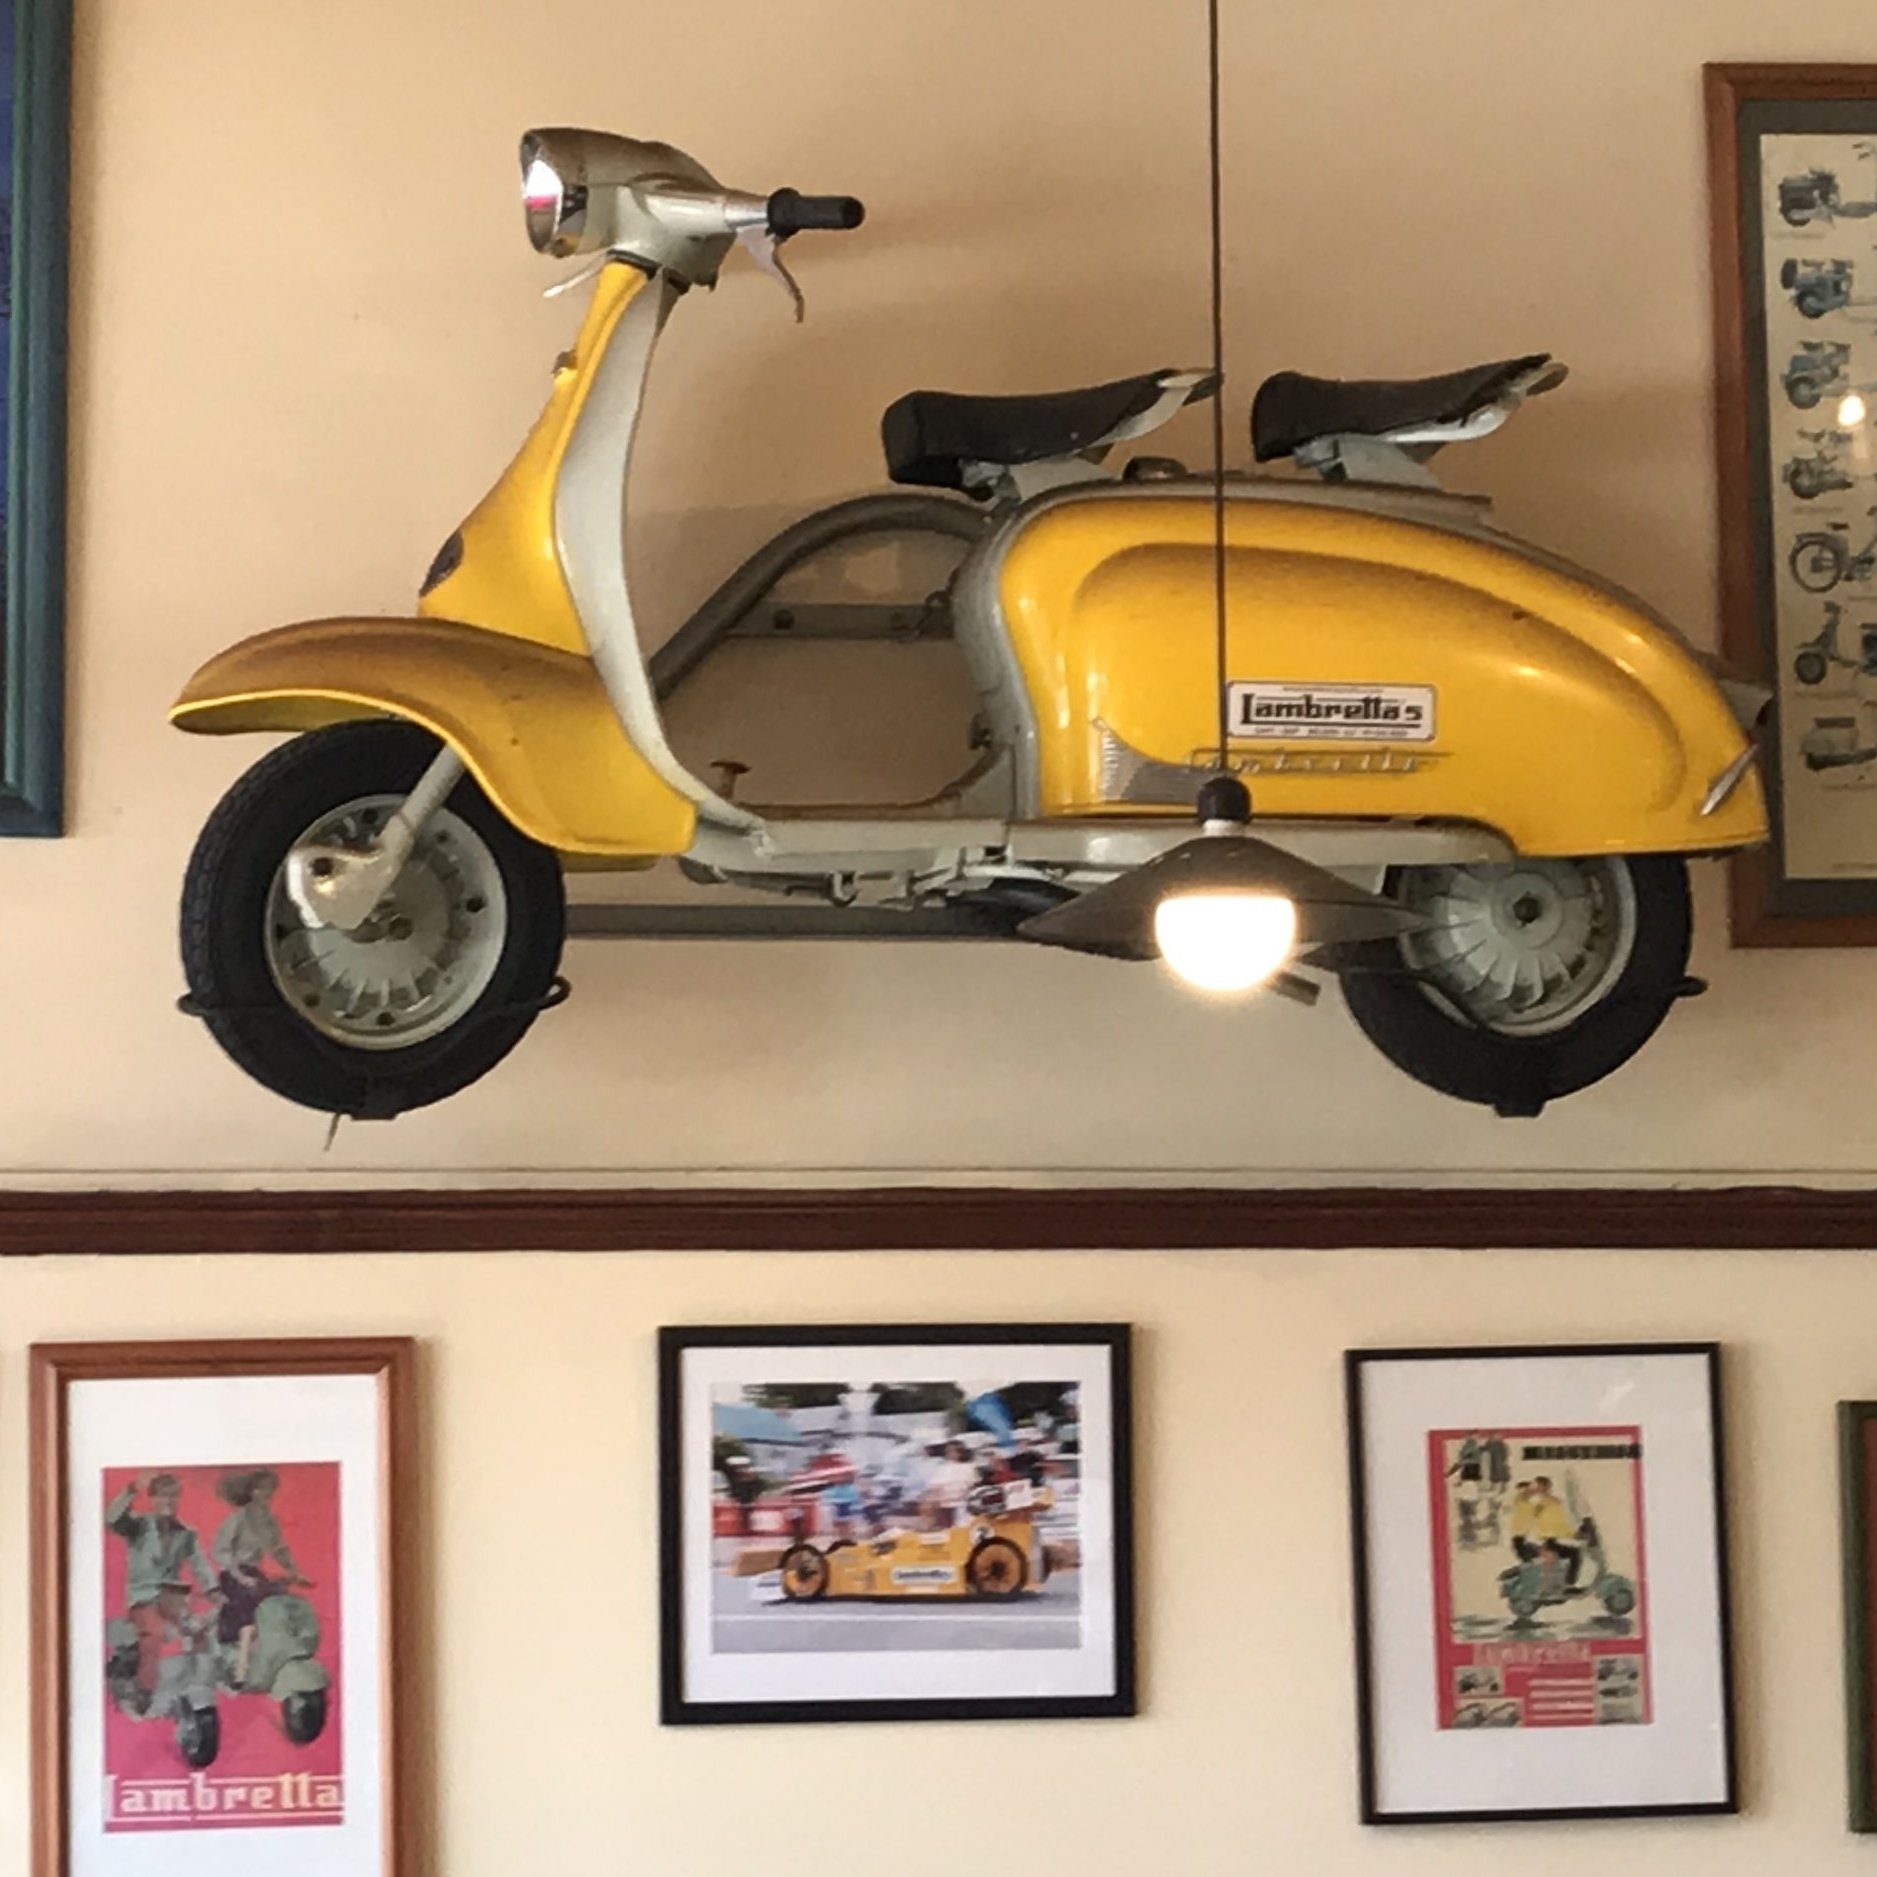 Lambretta's, Nelson. The Doubtful Traveller